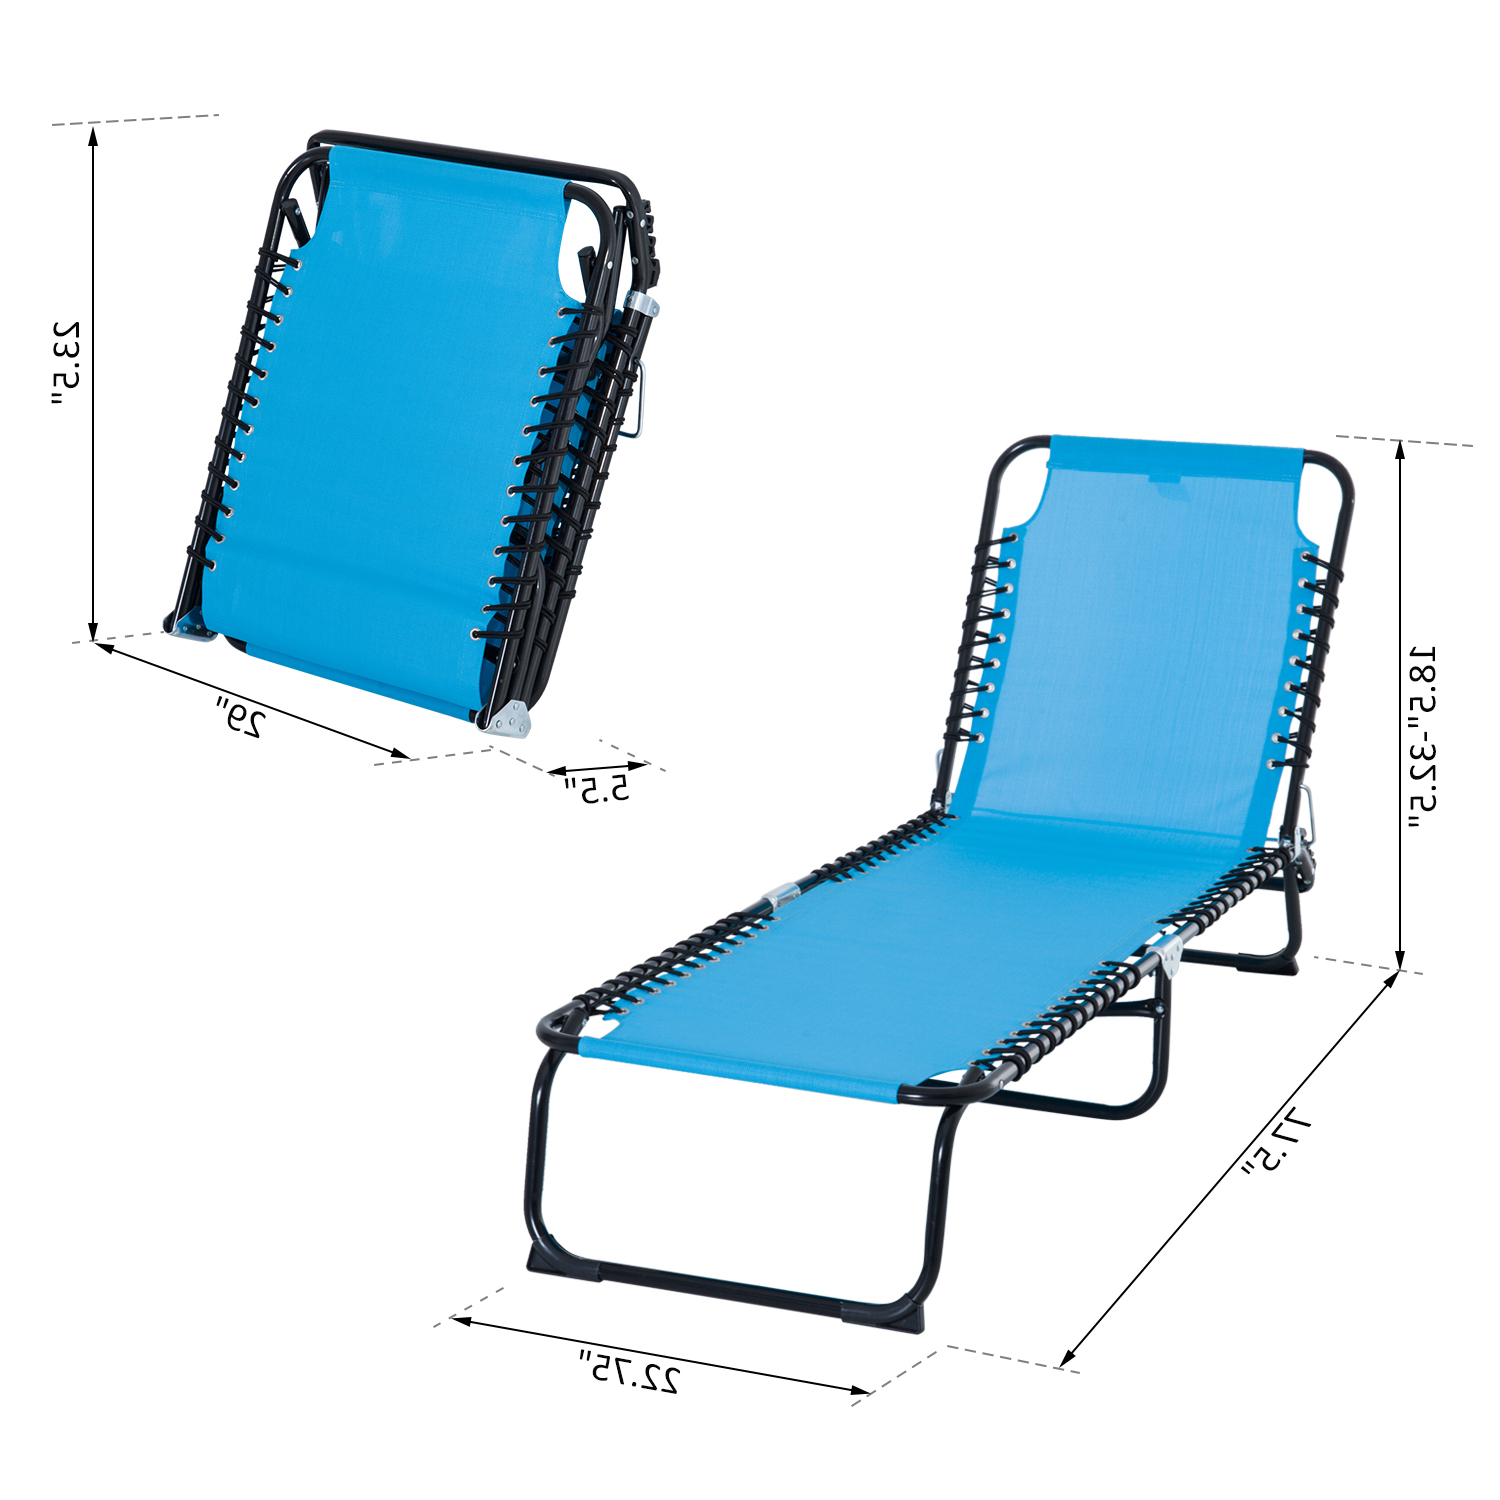 Outsunny Portable 3 Position Reclining Folding Beach Chaise Lounge Chair Within Popular 3 Position Portable Folding Reclining Beach Chaise Lounges (View 3 of 25)